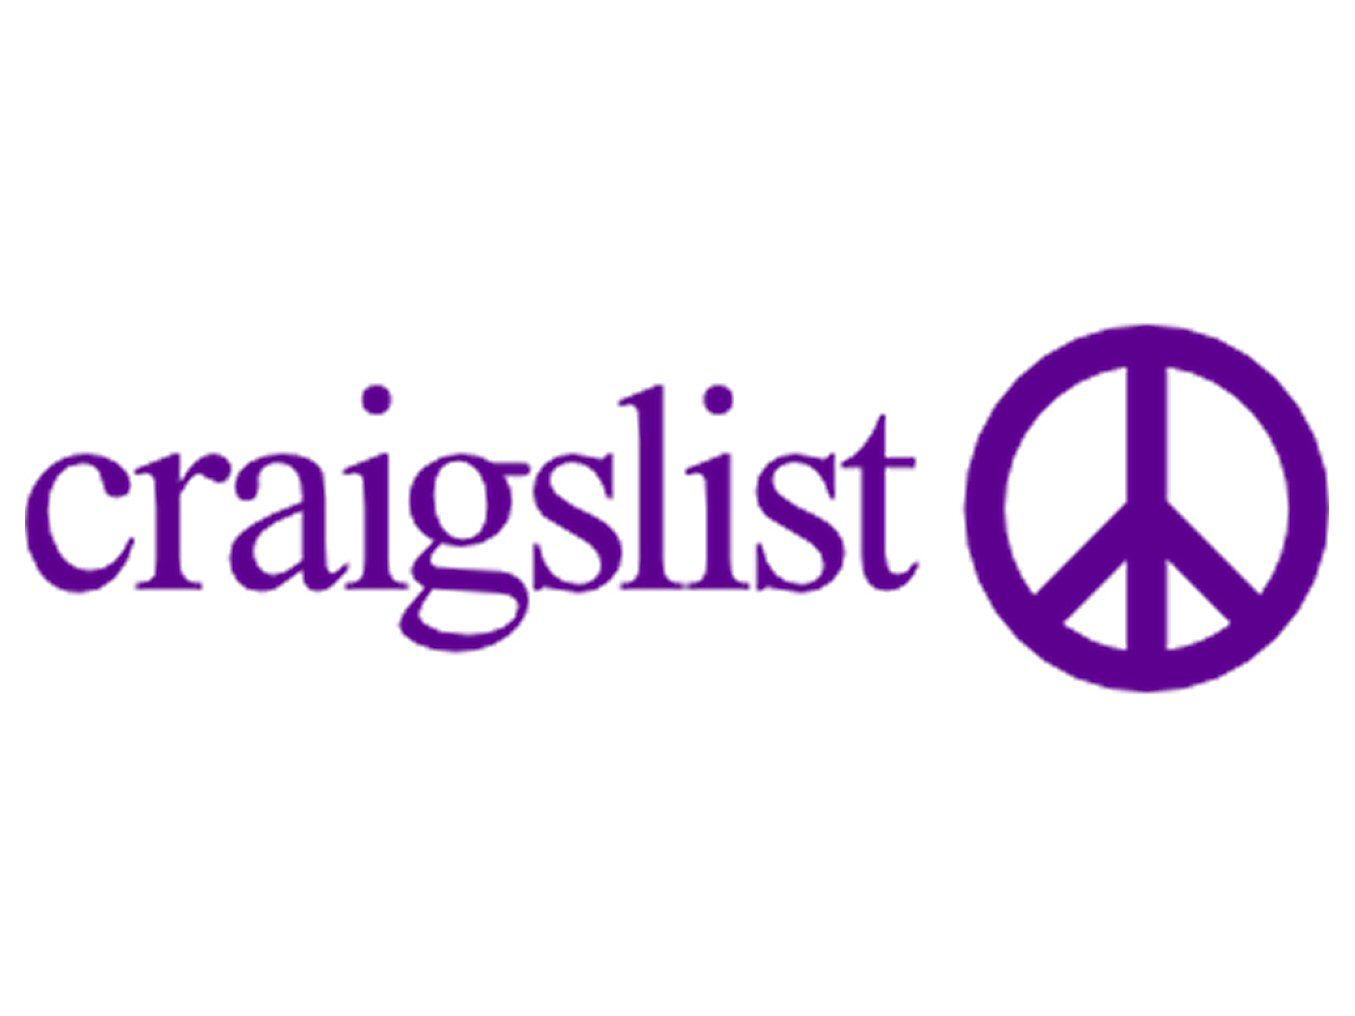 Craigslist Logo - Craigslist-logo - Global Dating Insights